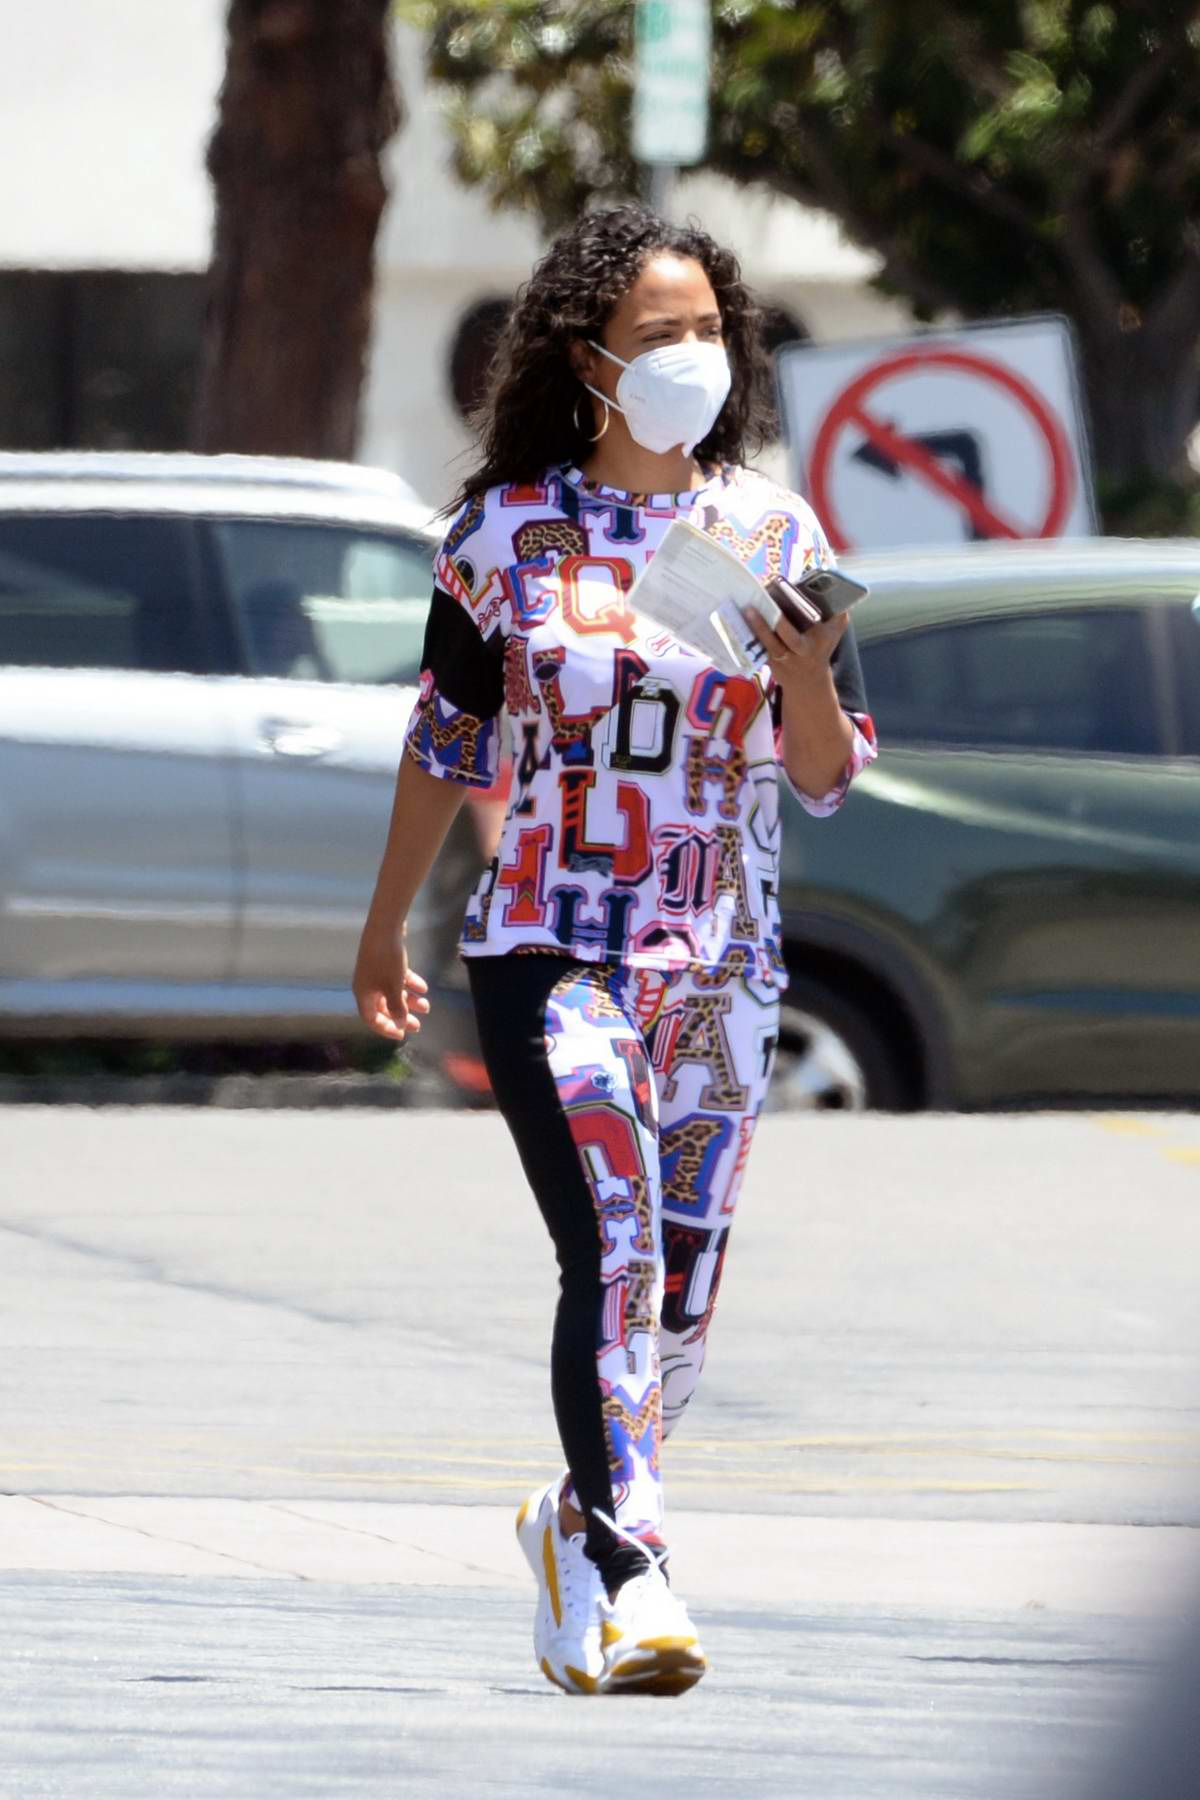 Christina Milian wears a colorful outfit while out running errands in Los Angeles